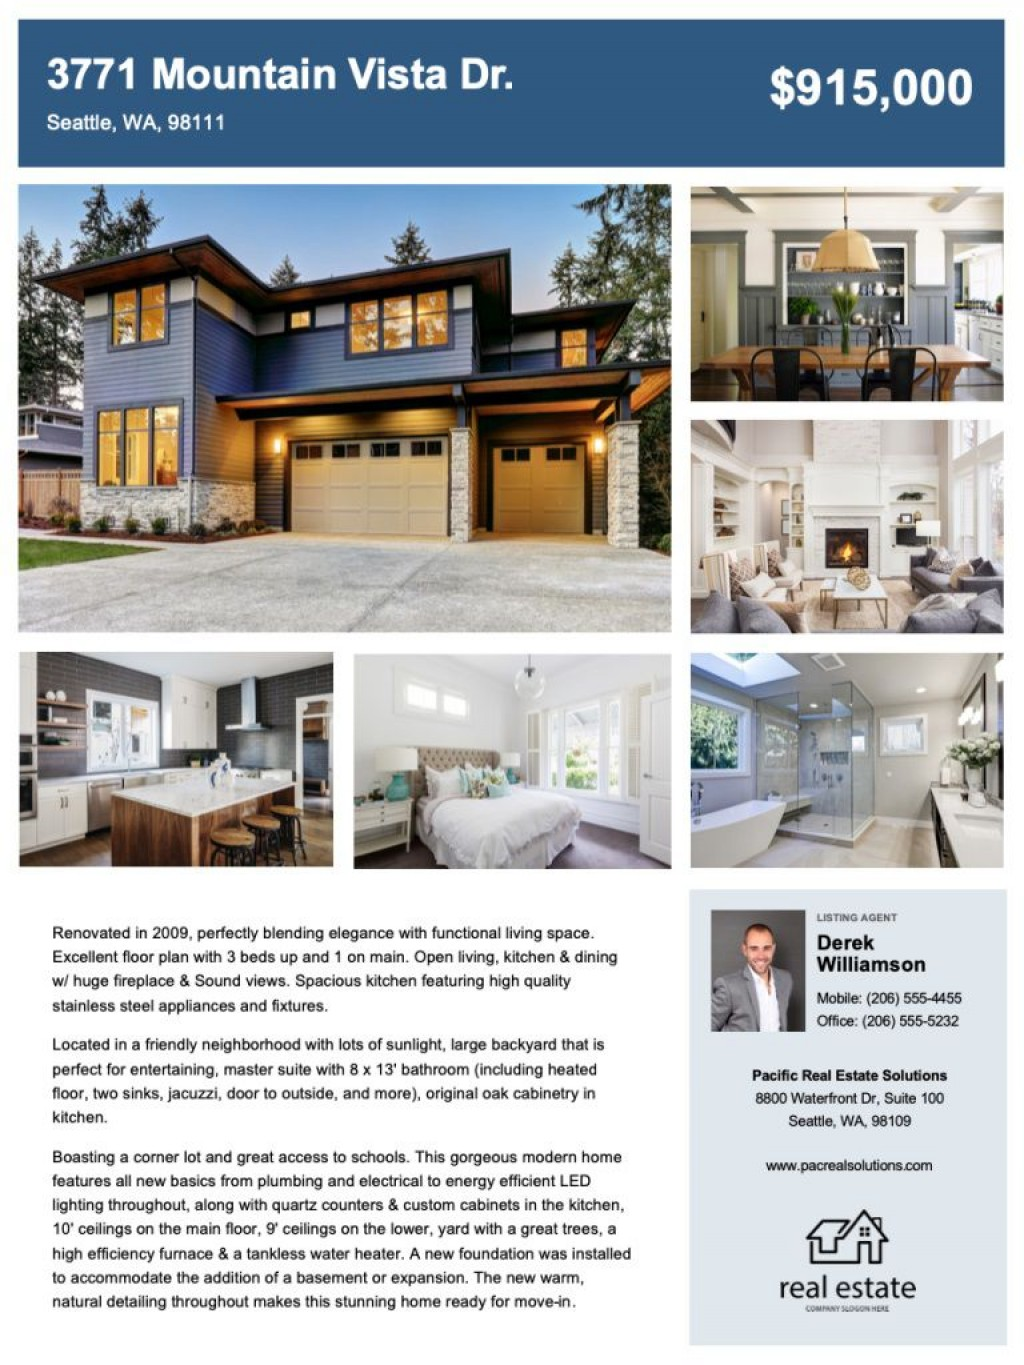 009 Striking House For Sale Flyer Template Inspiration  Free Real Estate Example By OwnerLarge